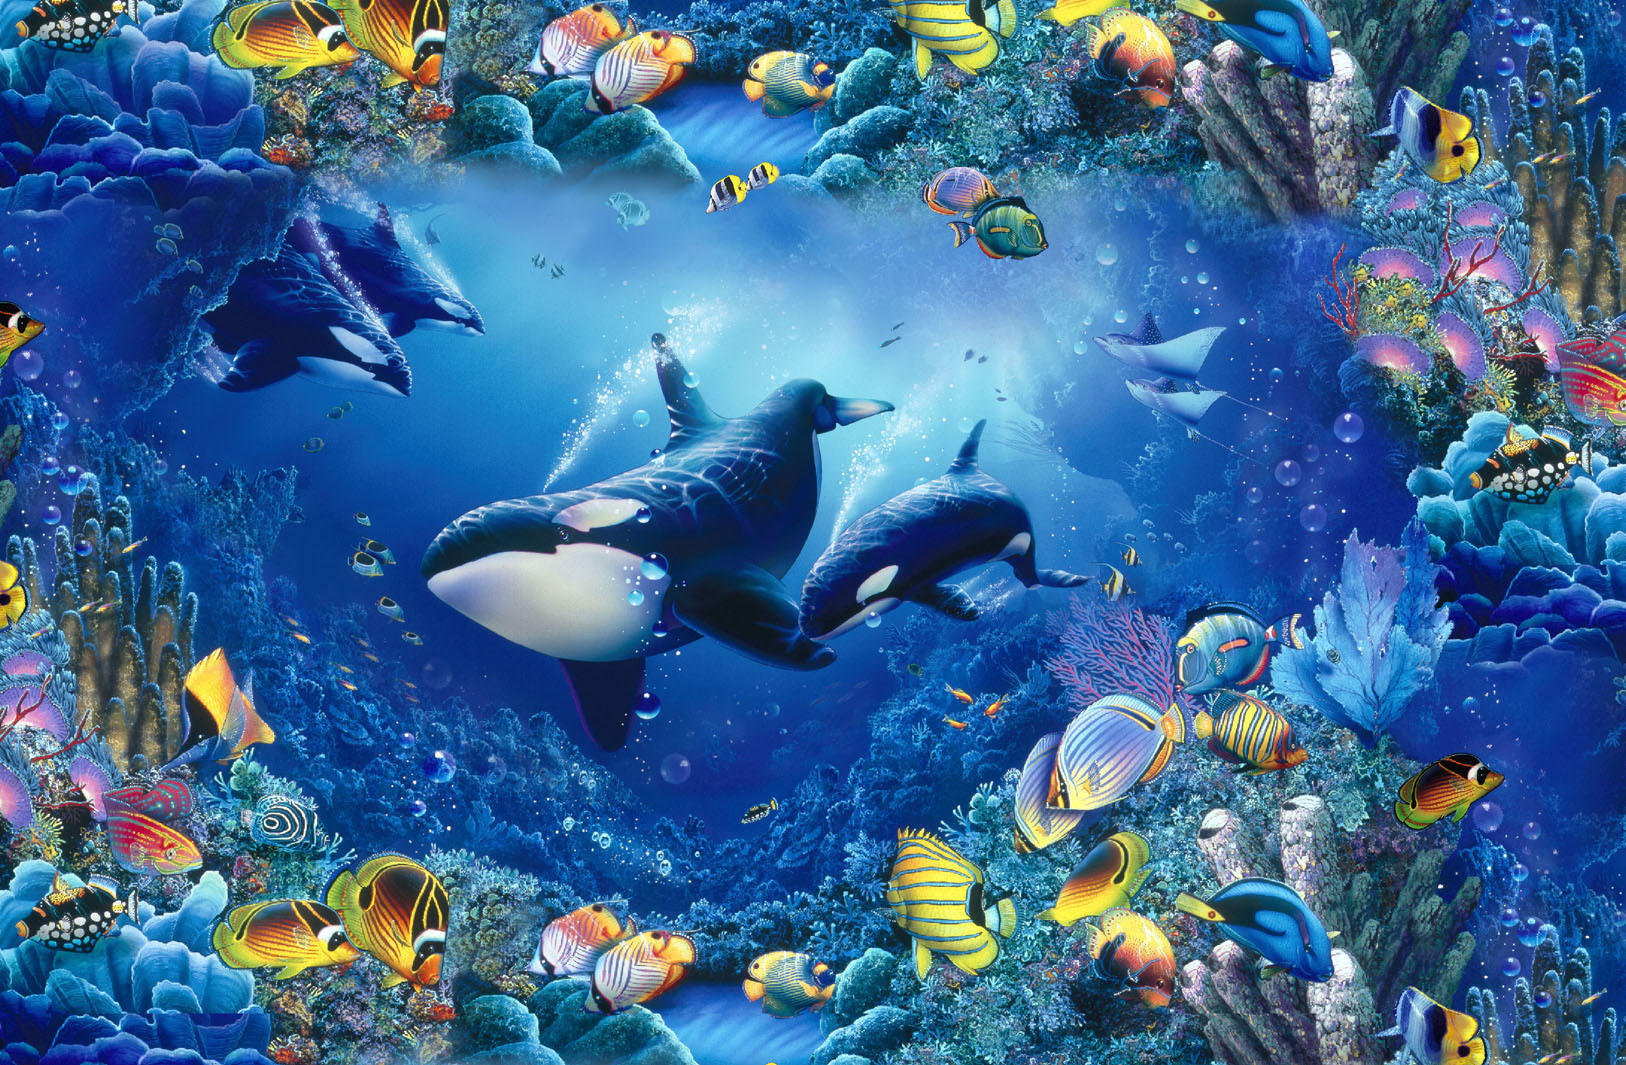 water fish killer whales HD Wallpaper